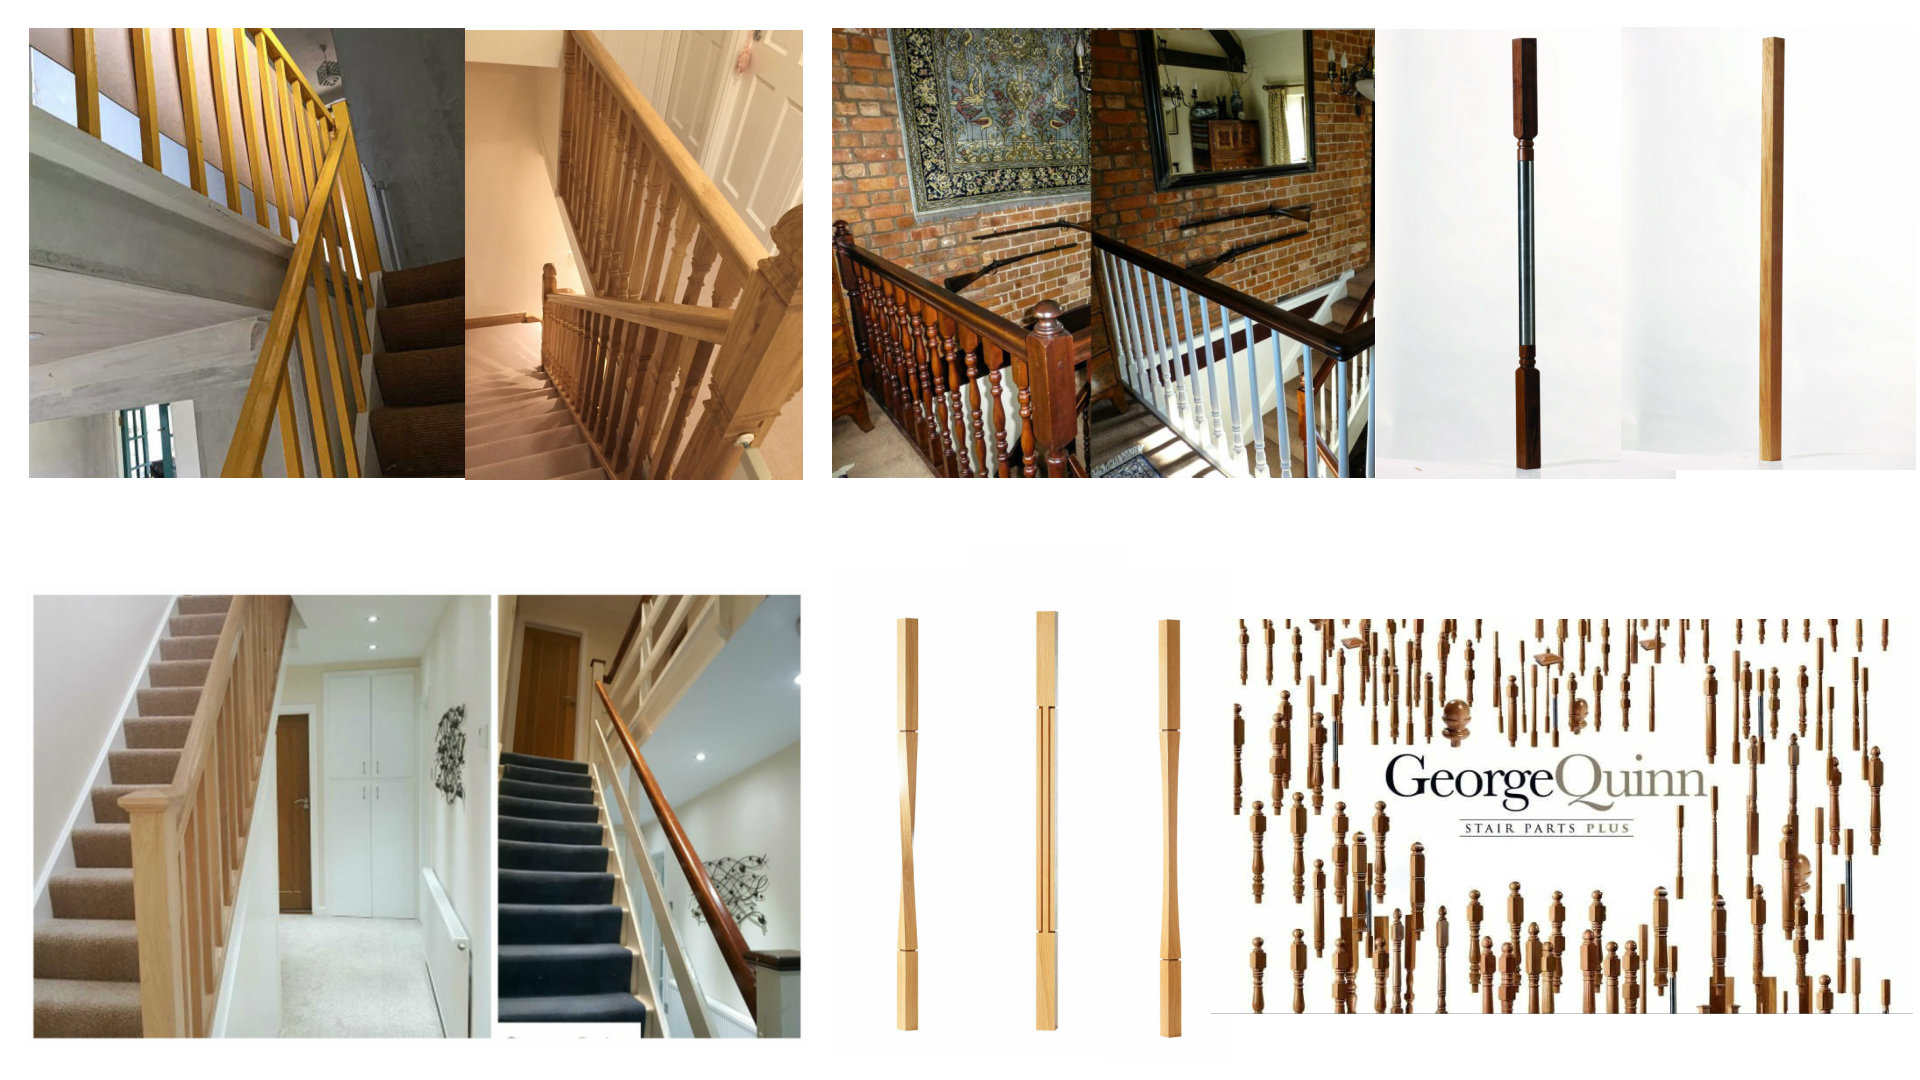 George Quinn Stair Parts Plus - Staircase Design - Stair Renovation Images